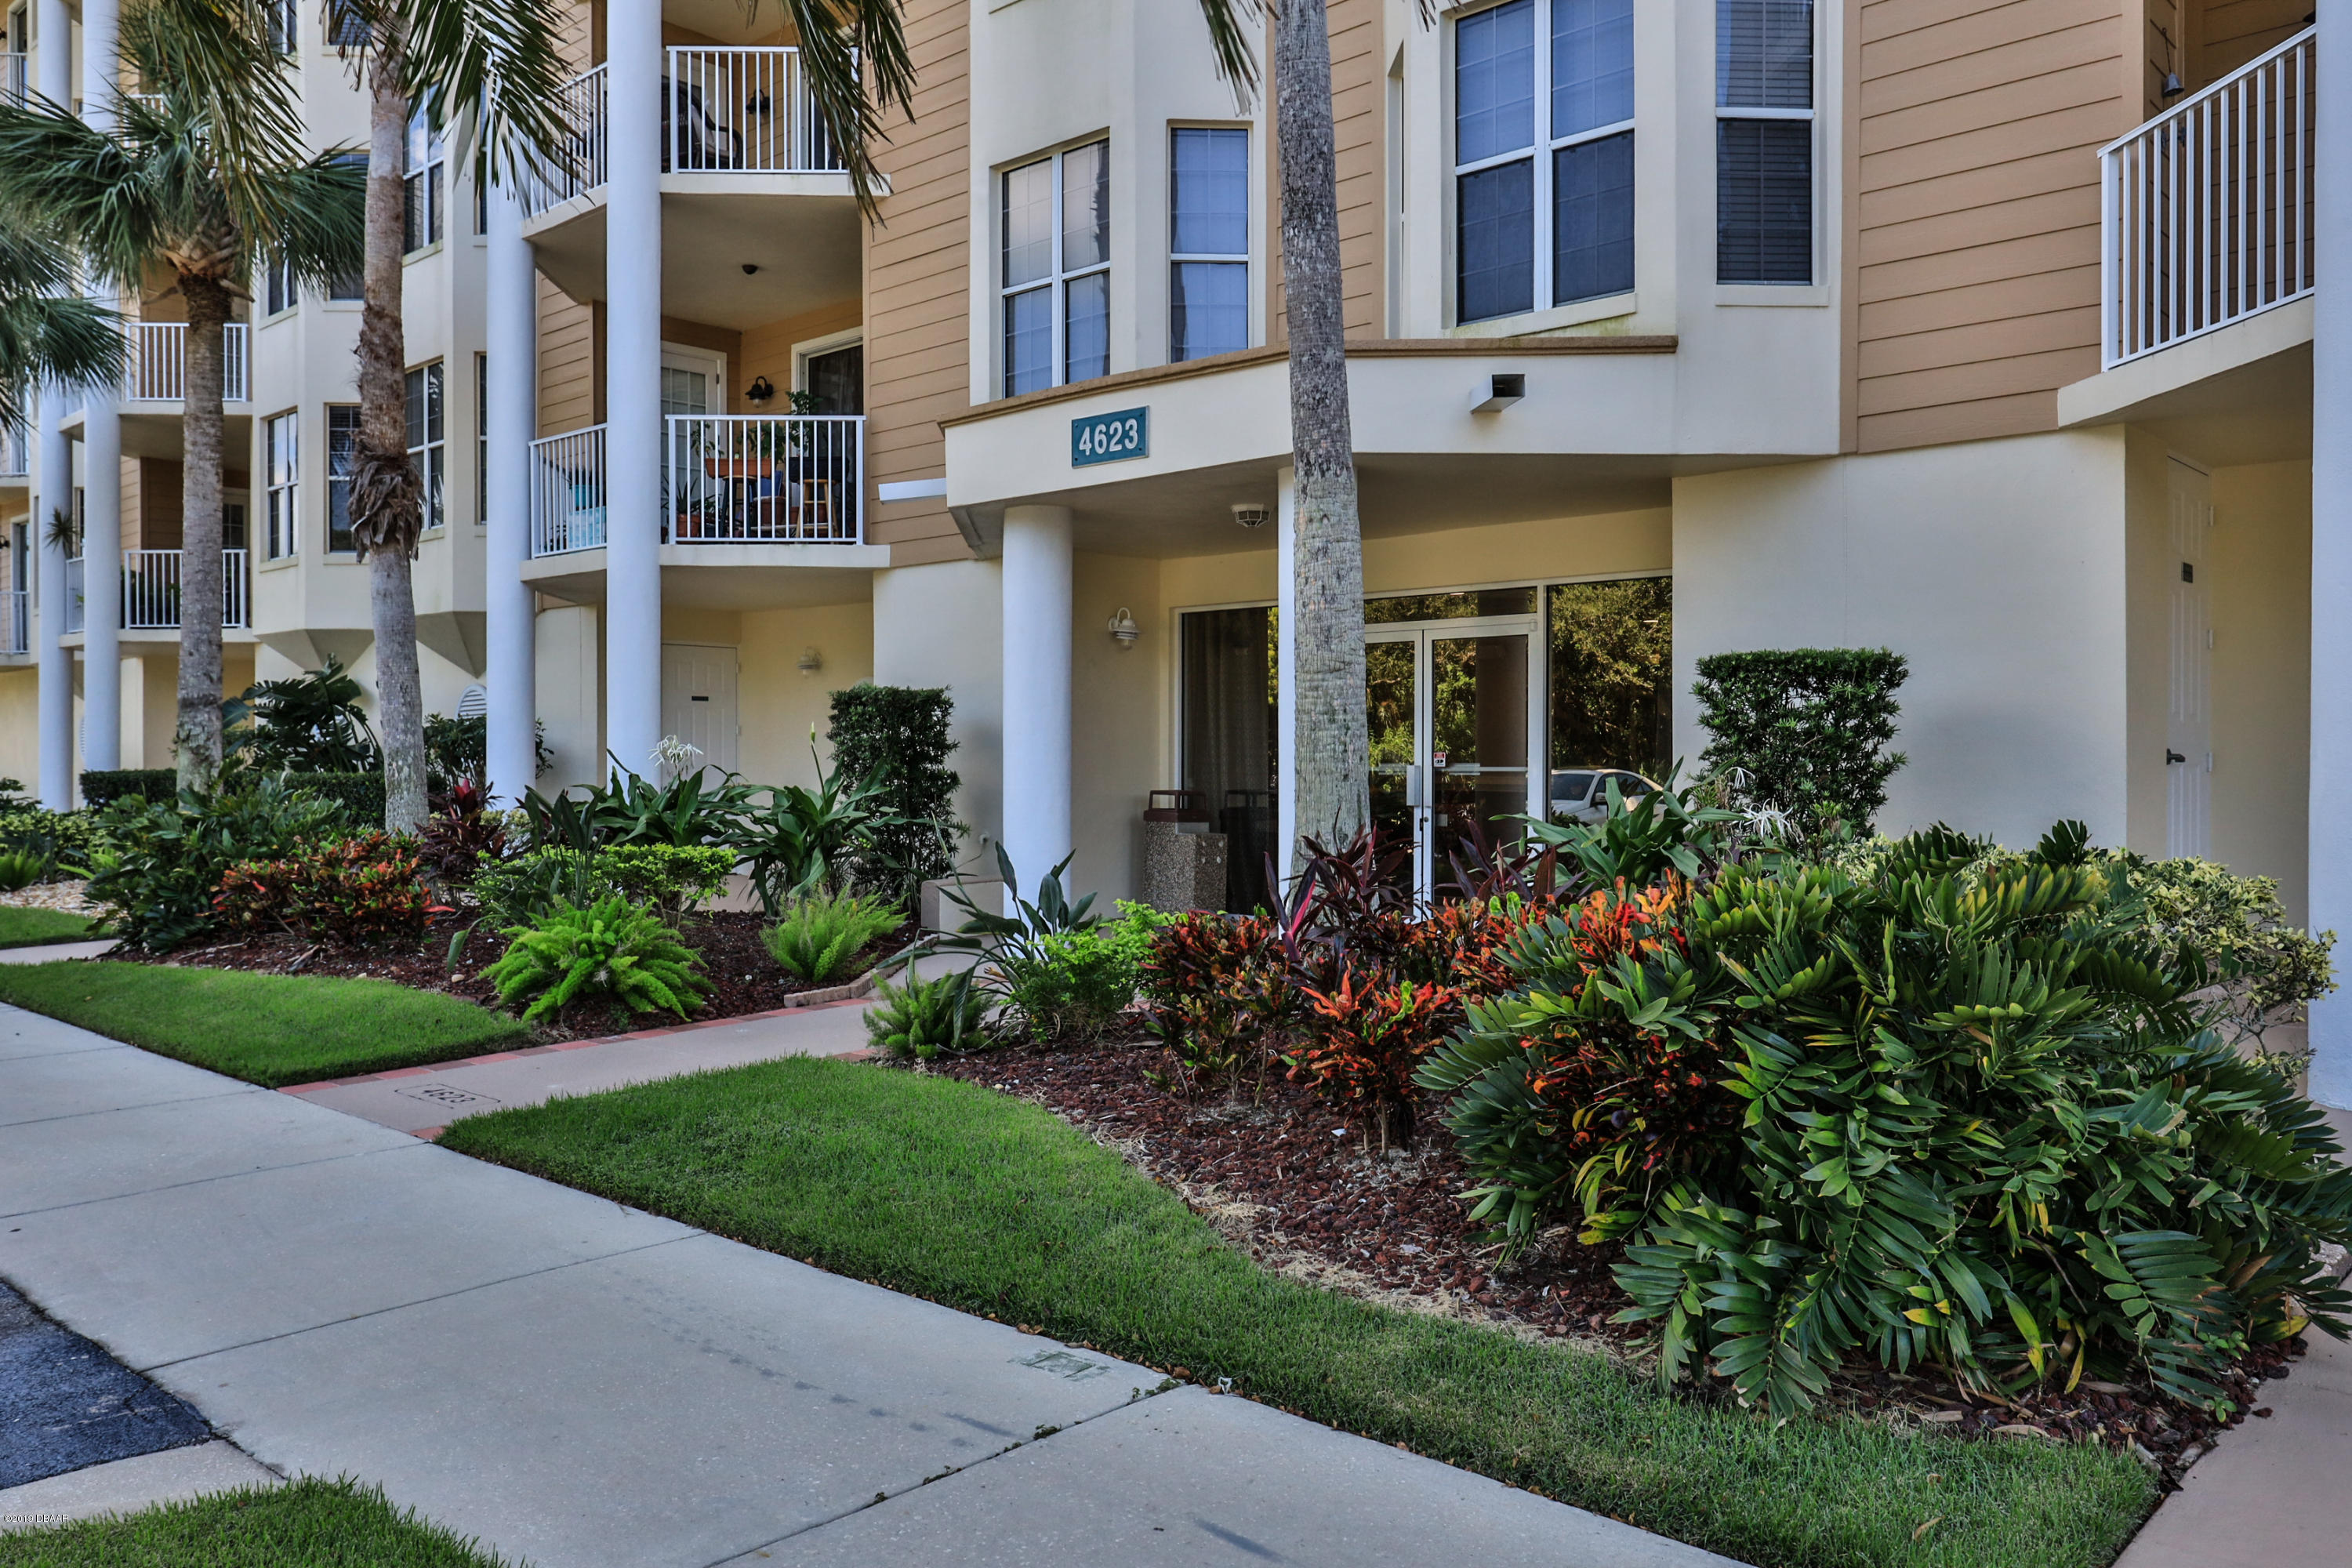 One of Ponce Inlet 3 Bedroom Homes for Sale at 4623 Rivers Edge Village Lane